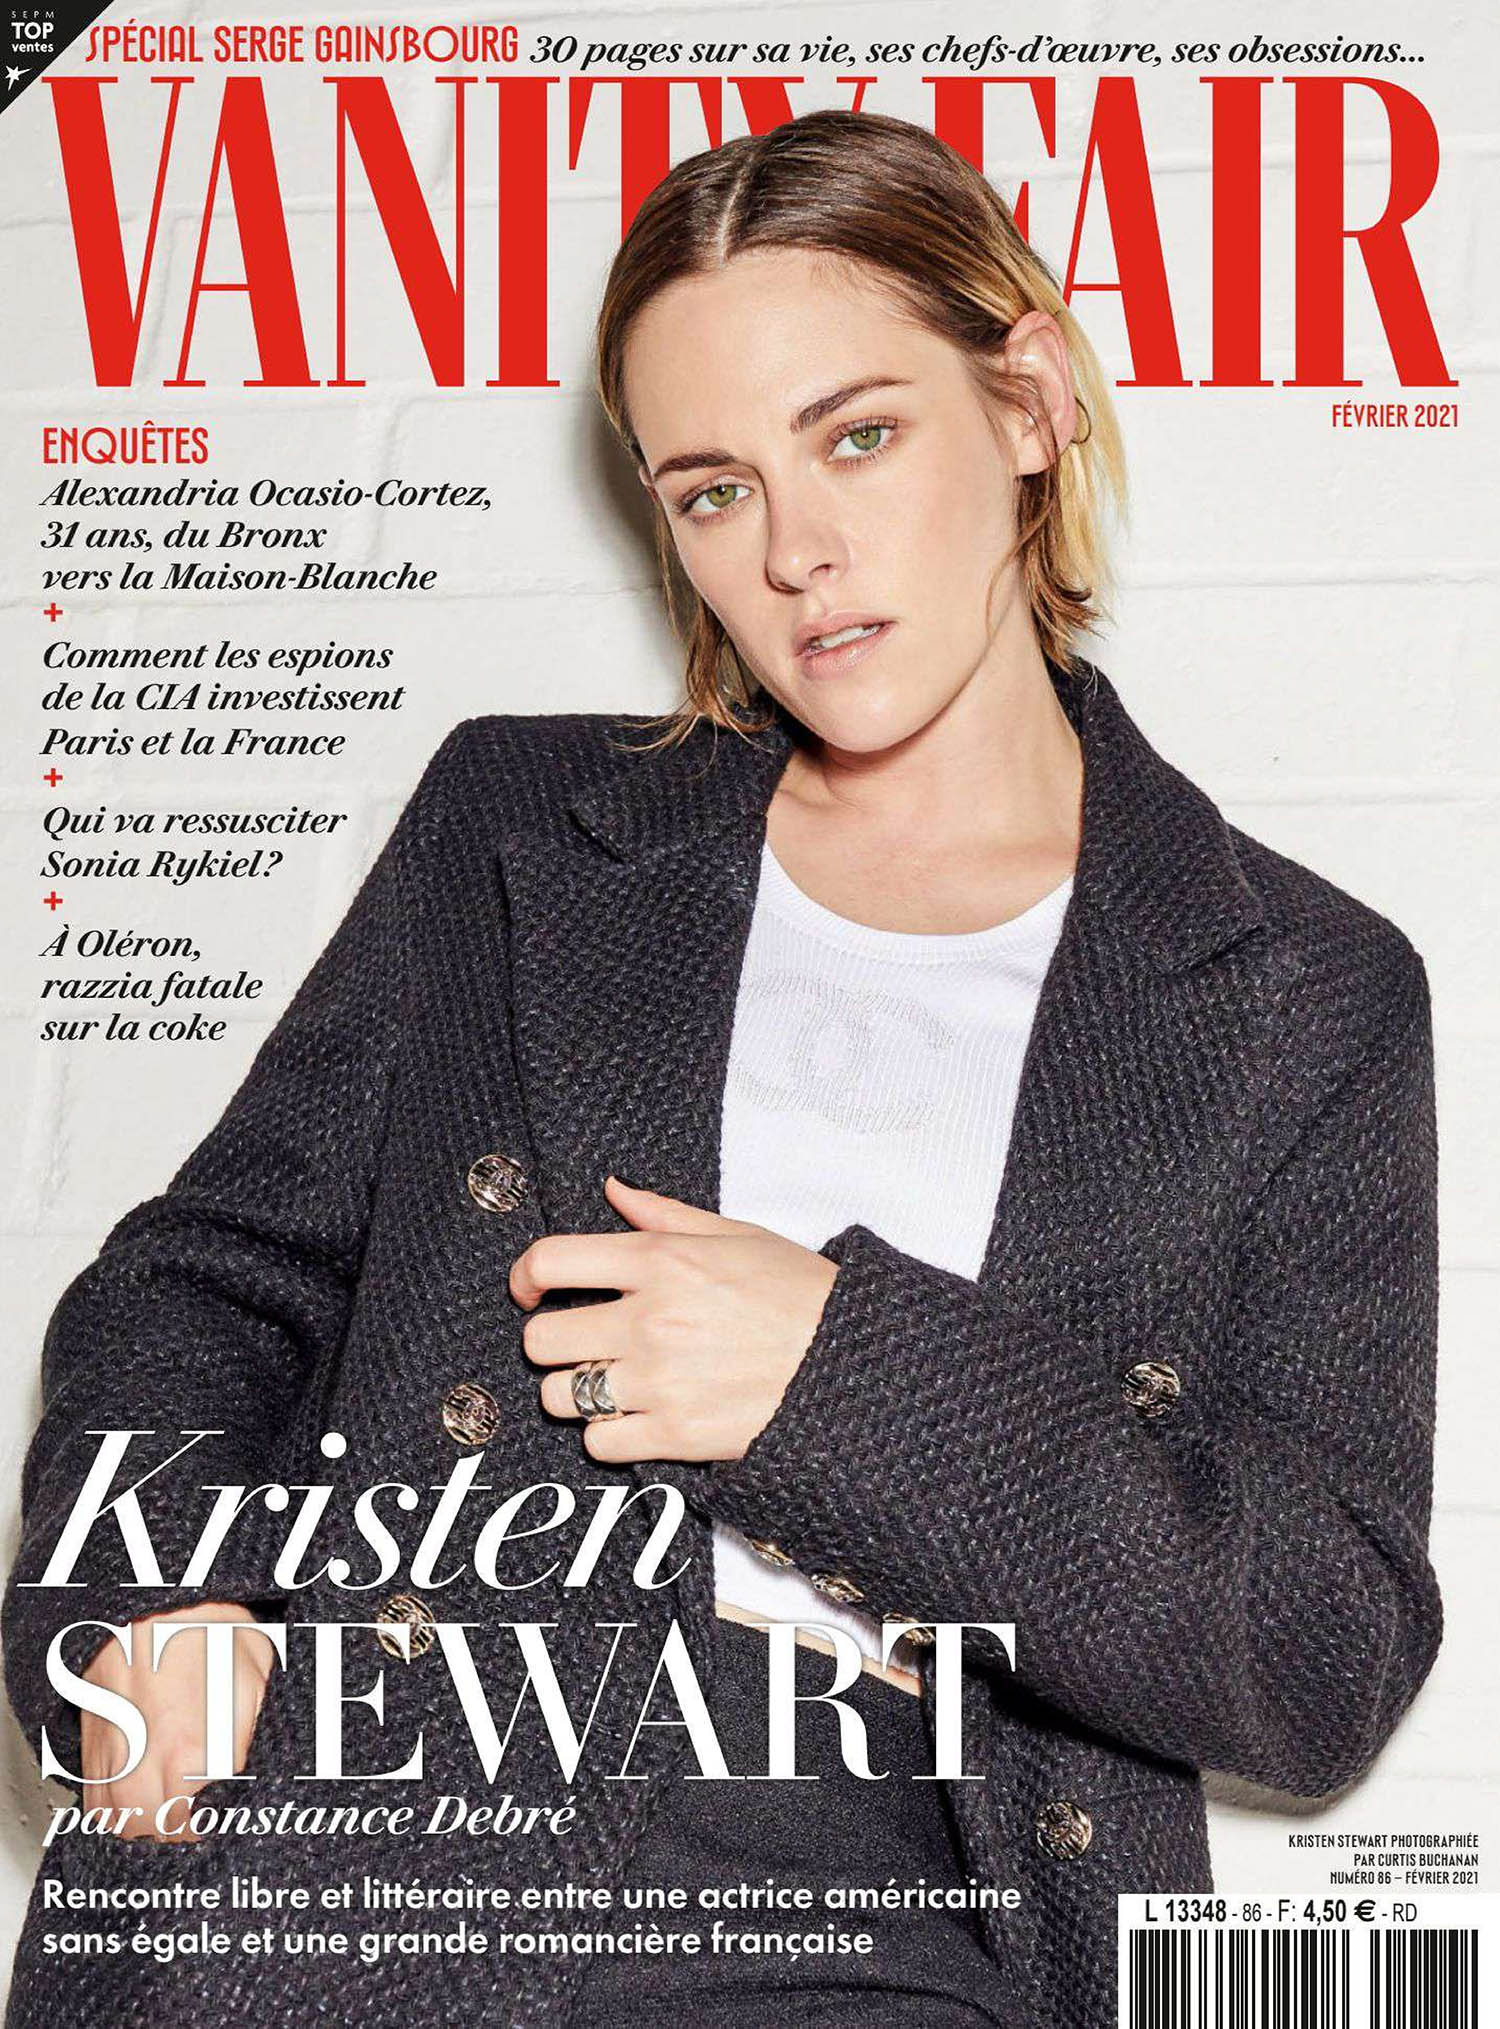 Kristen Stewart covers Vanity Fair France February 2021 by Curtis Buchanan